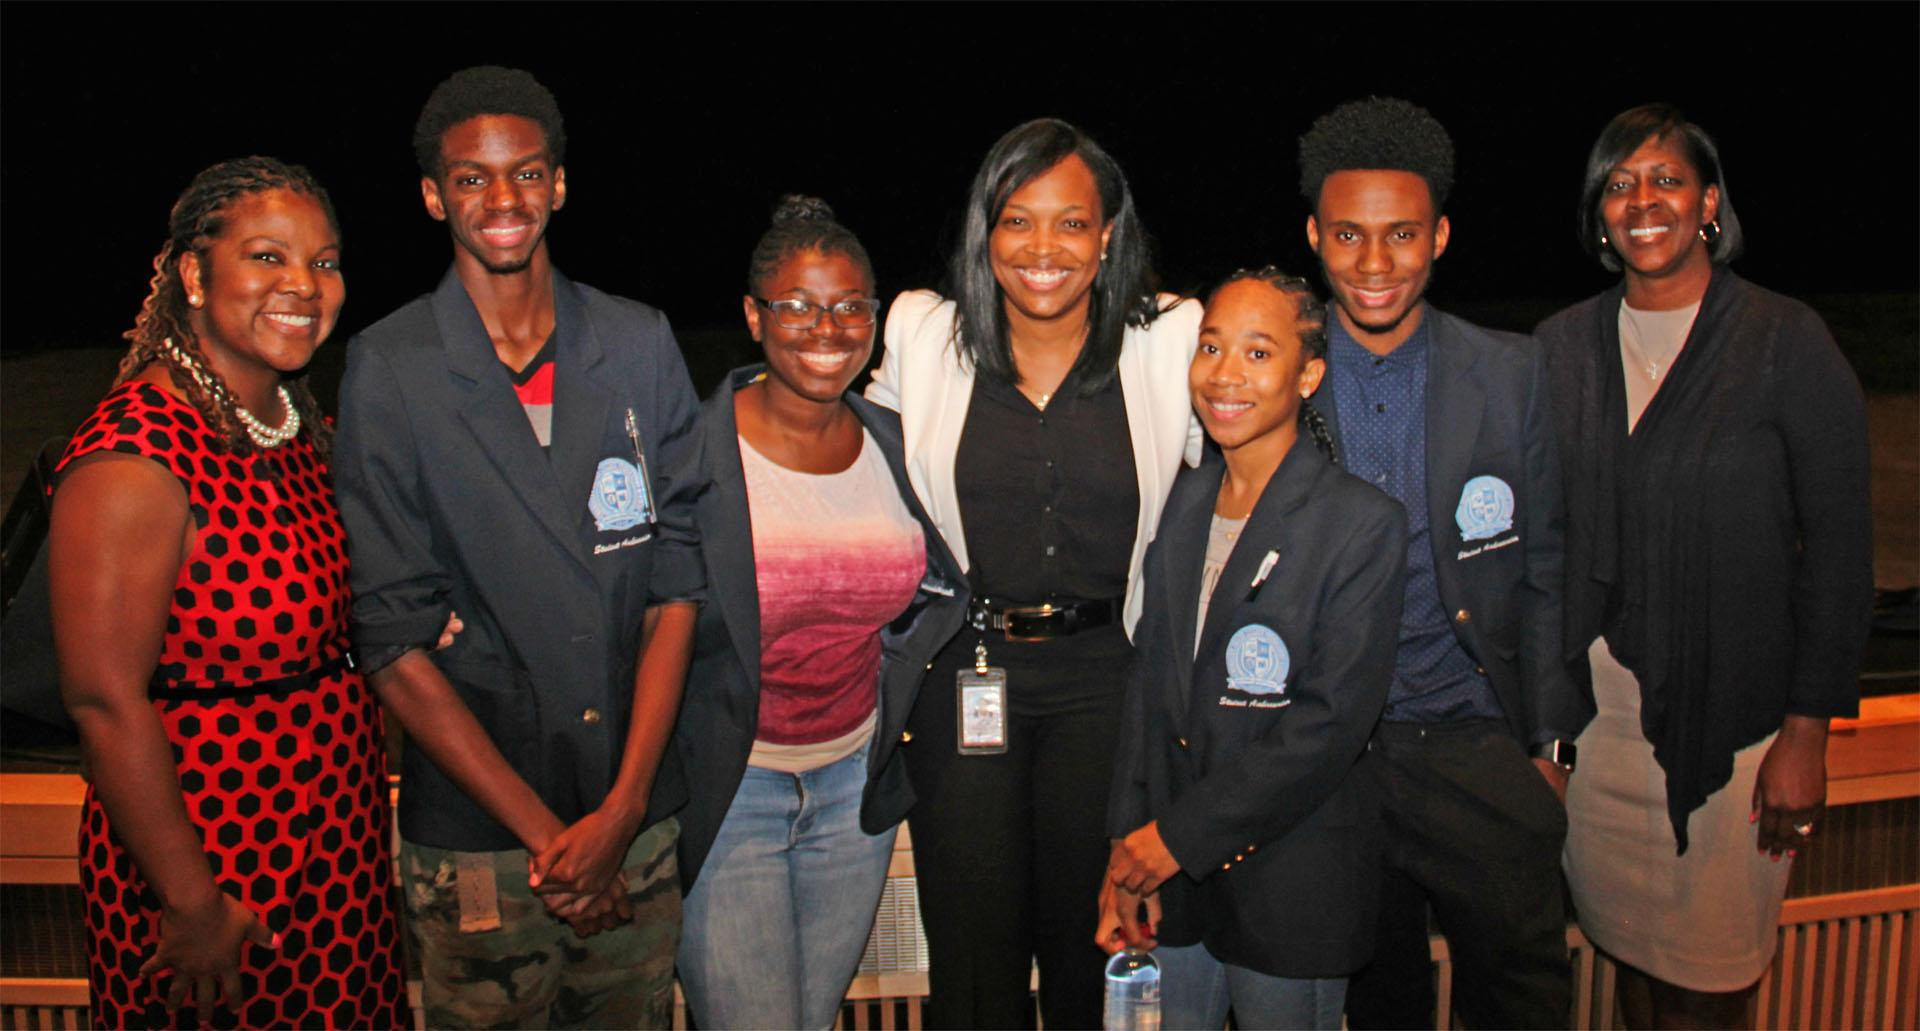 Photo of Principal Jackson, students and Dr. Jackson.